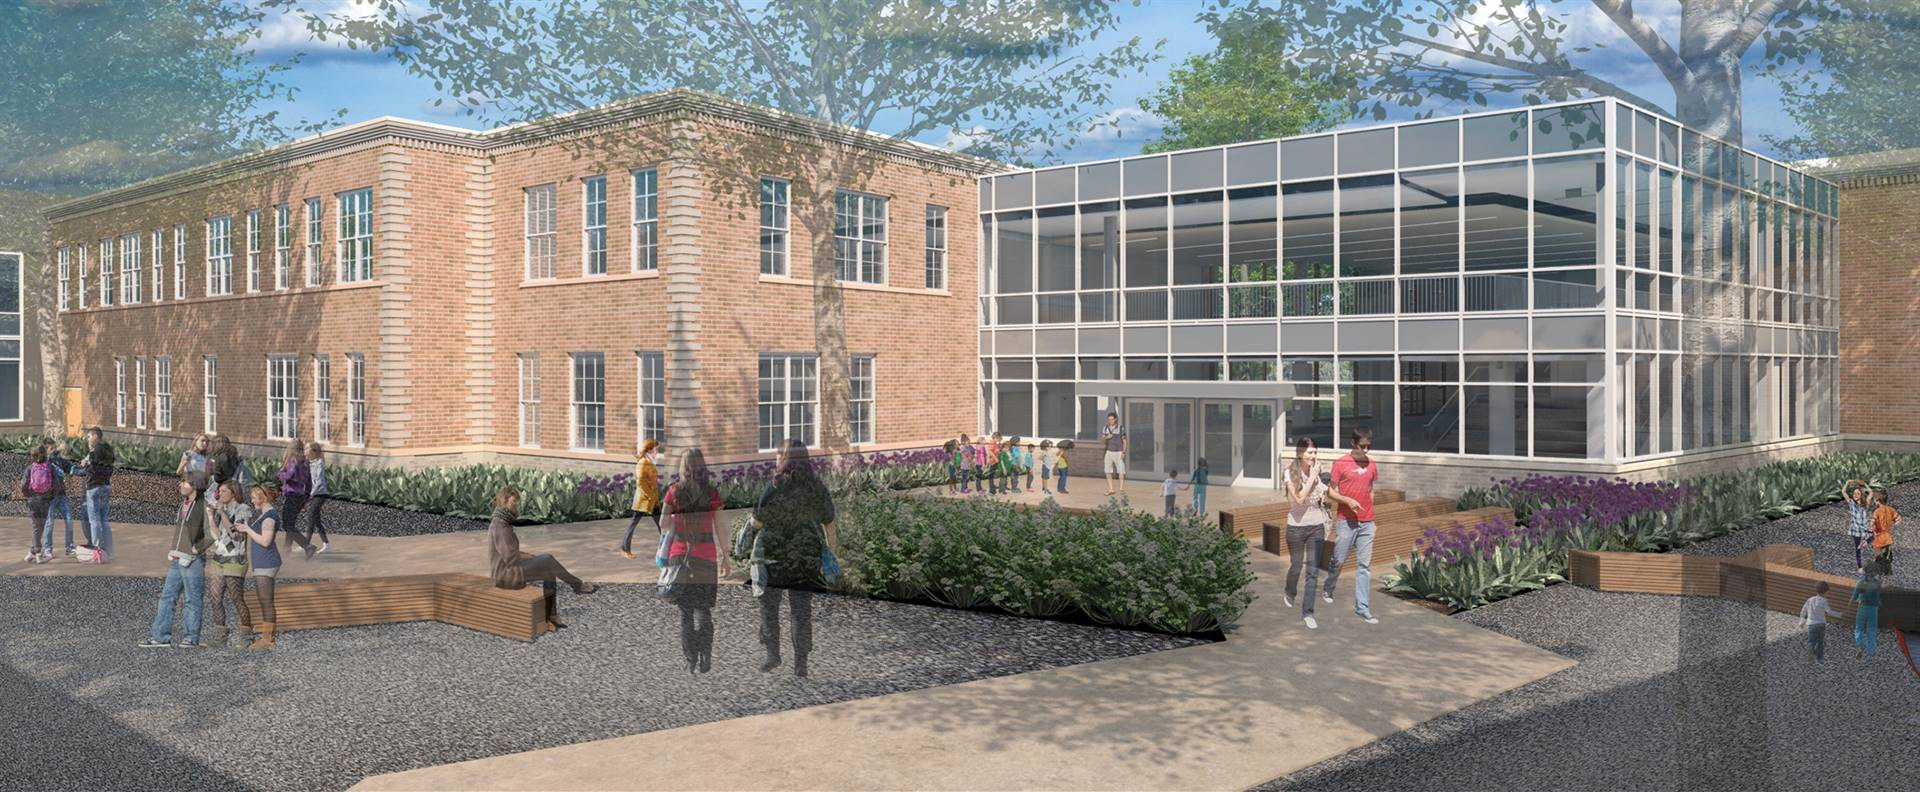 A rendering of a courtyard and new addition to Barrington Elementary School